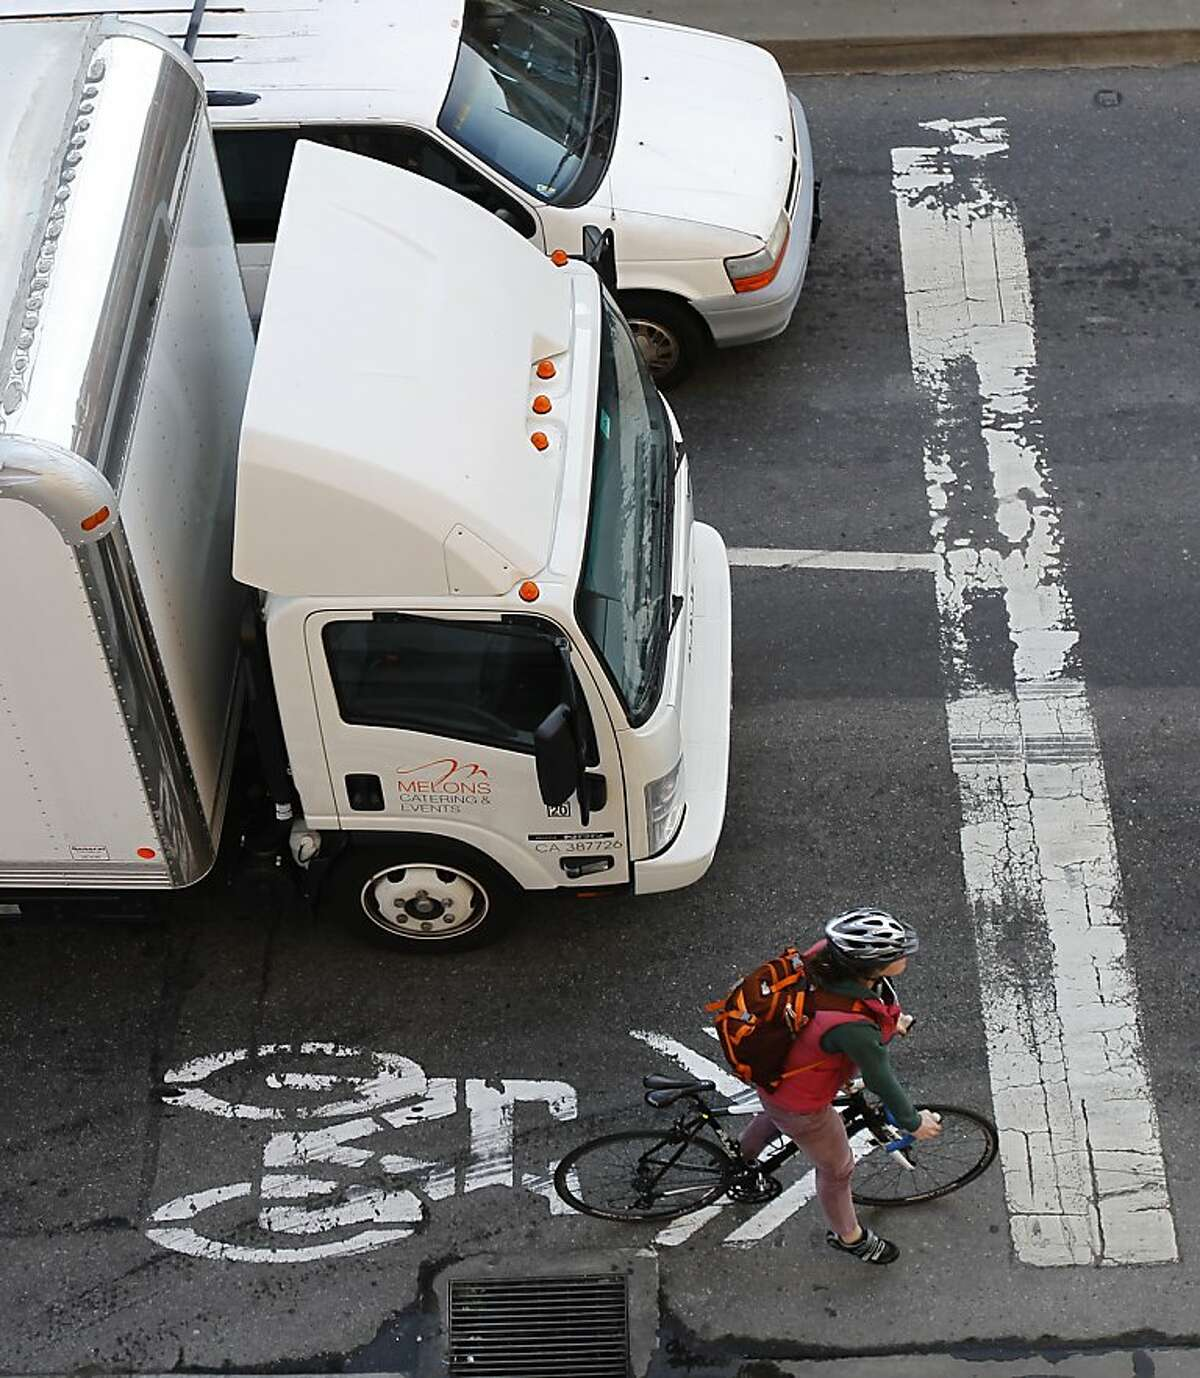 A cyclist prepares to merge into traffic near the end of the bike lane on King Street between 2nd and 3rd streets in San Francisco, Calif. on Tuesday, Feb. 12, 2013. A woman riding her bicycle was struck and killed after she collided with a cement truck last weekend.